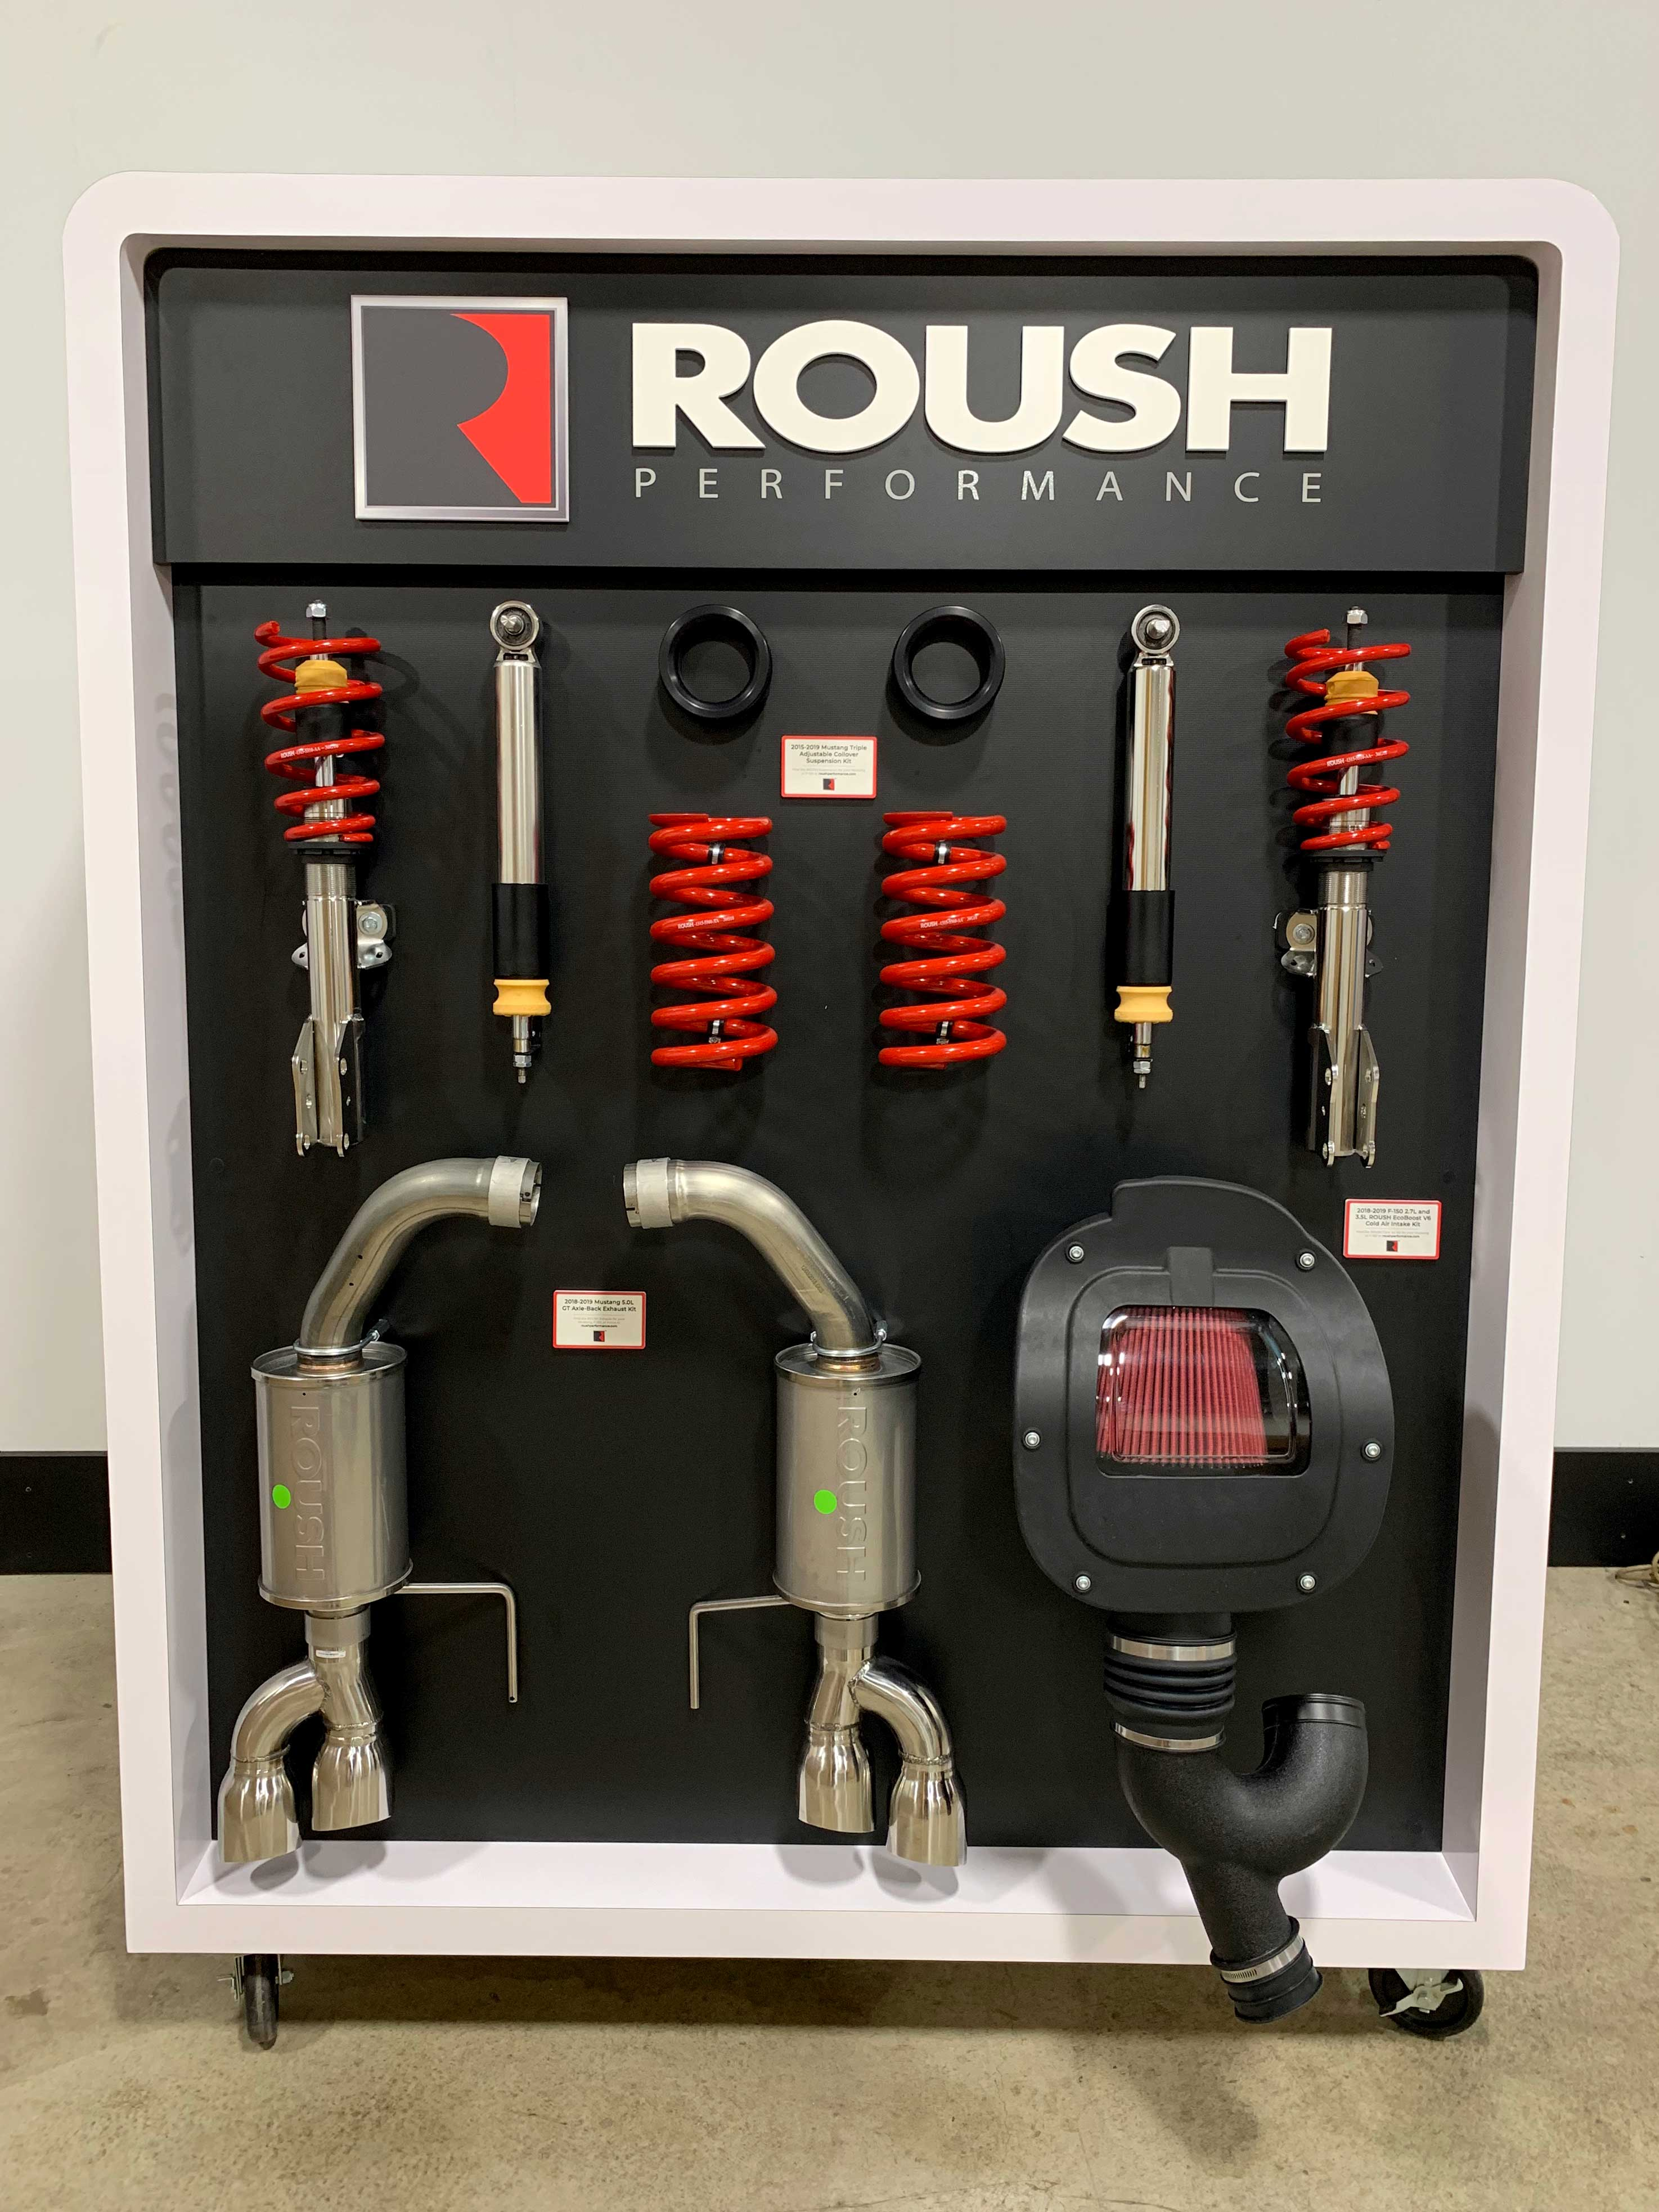 Rolling kiosk for Roush displaying a collection car part products like springs and exhaust pipes.